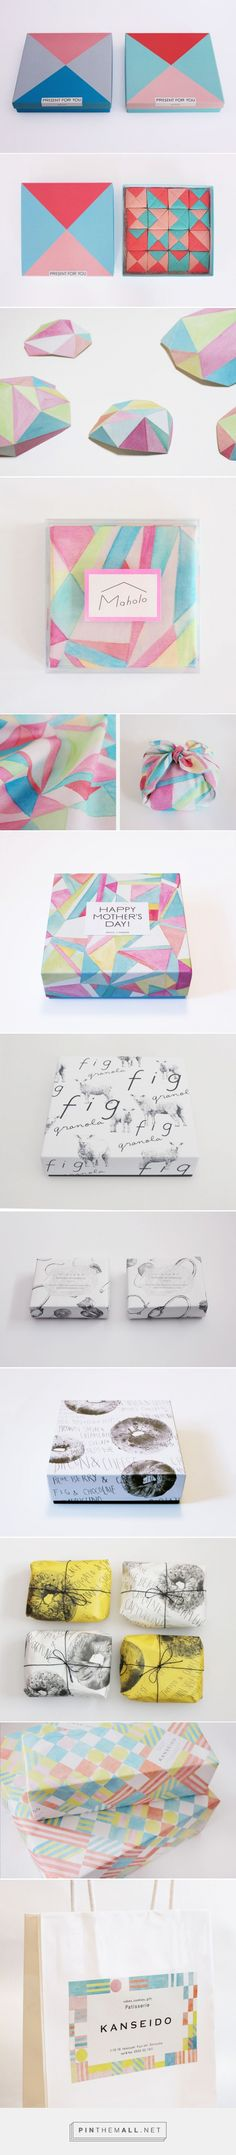 WORKS - yuka-shiramoto curated by Packaging Diva PD. A beautiful collection of packaging and wrapping. Cd Cover Design, Ad Design, Pattern Design, Print Design, Branding Design, Graphic Design, Design Research, Packaging Design Inspiration, Graphic Patterns